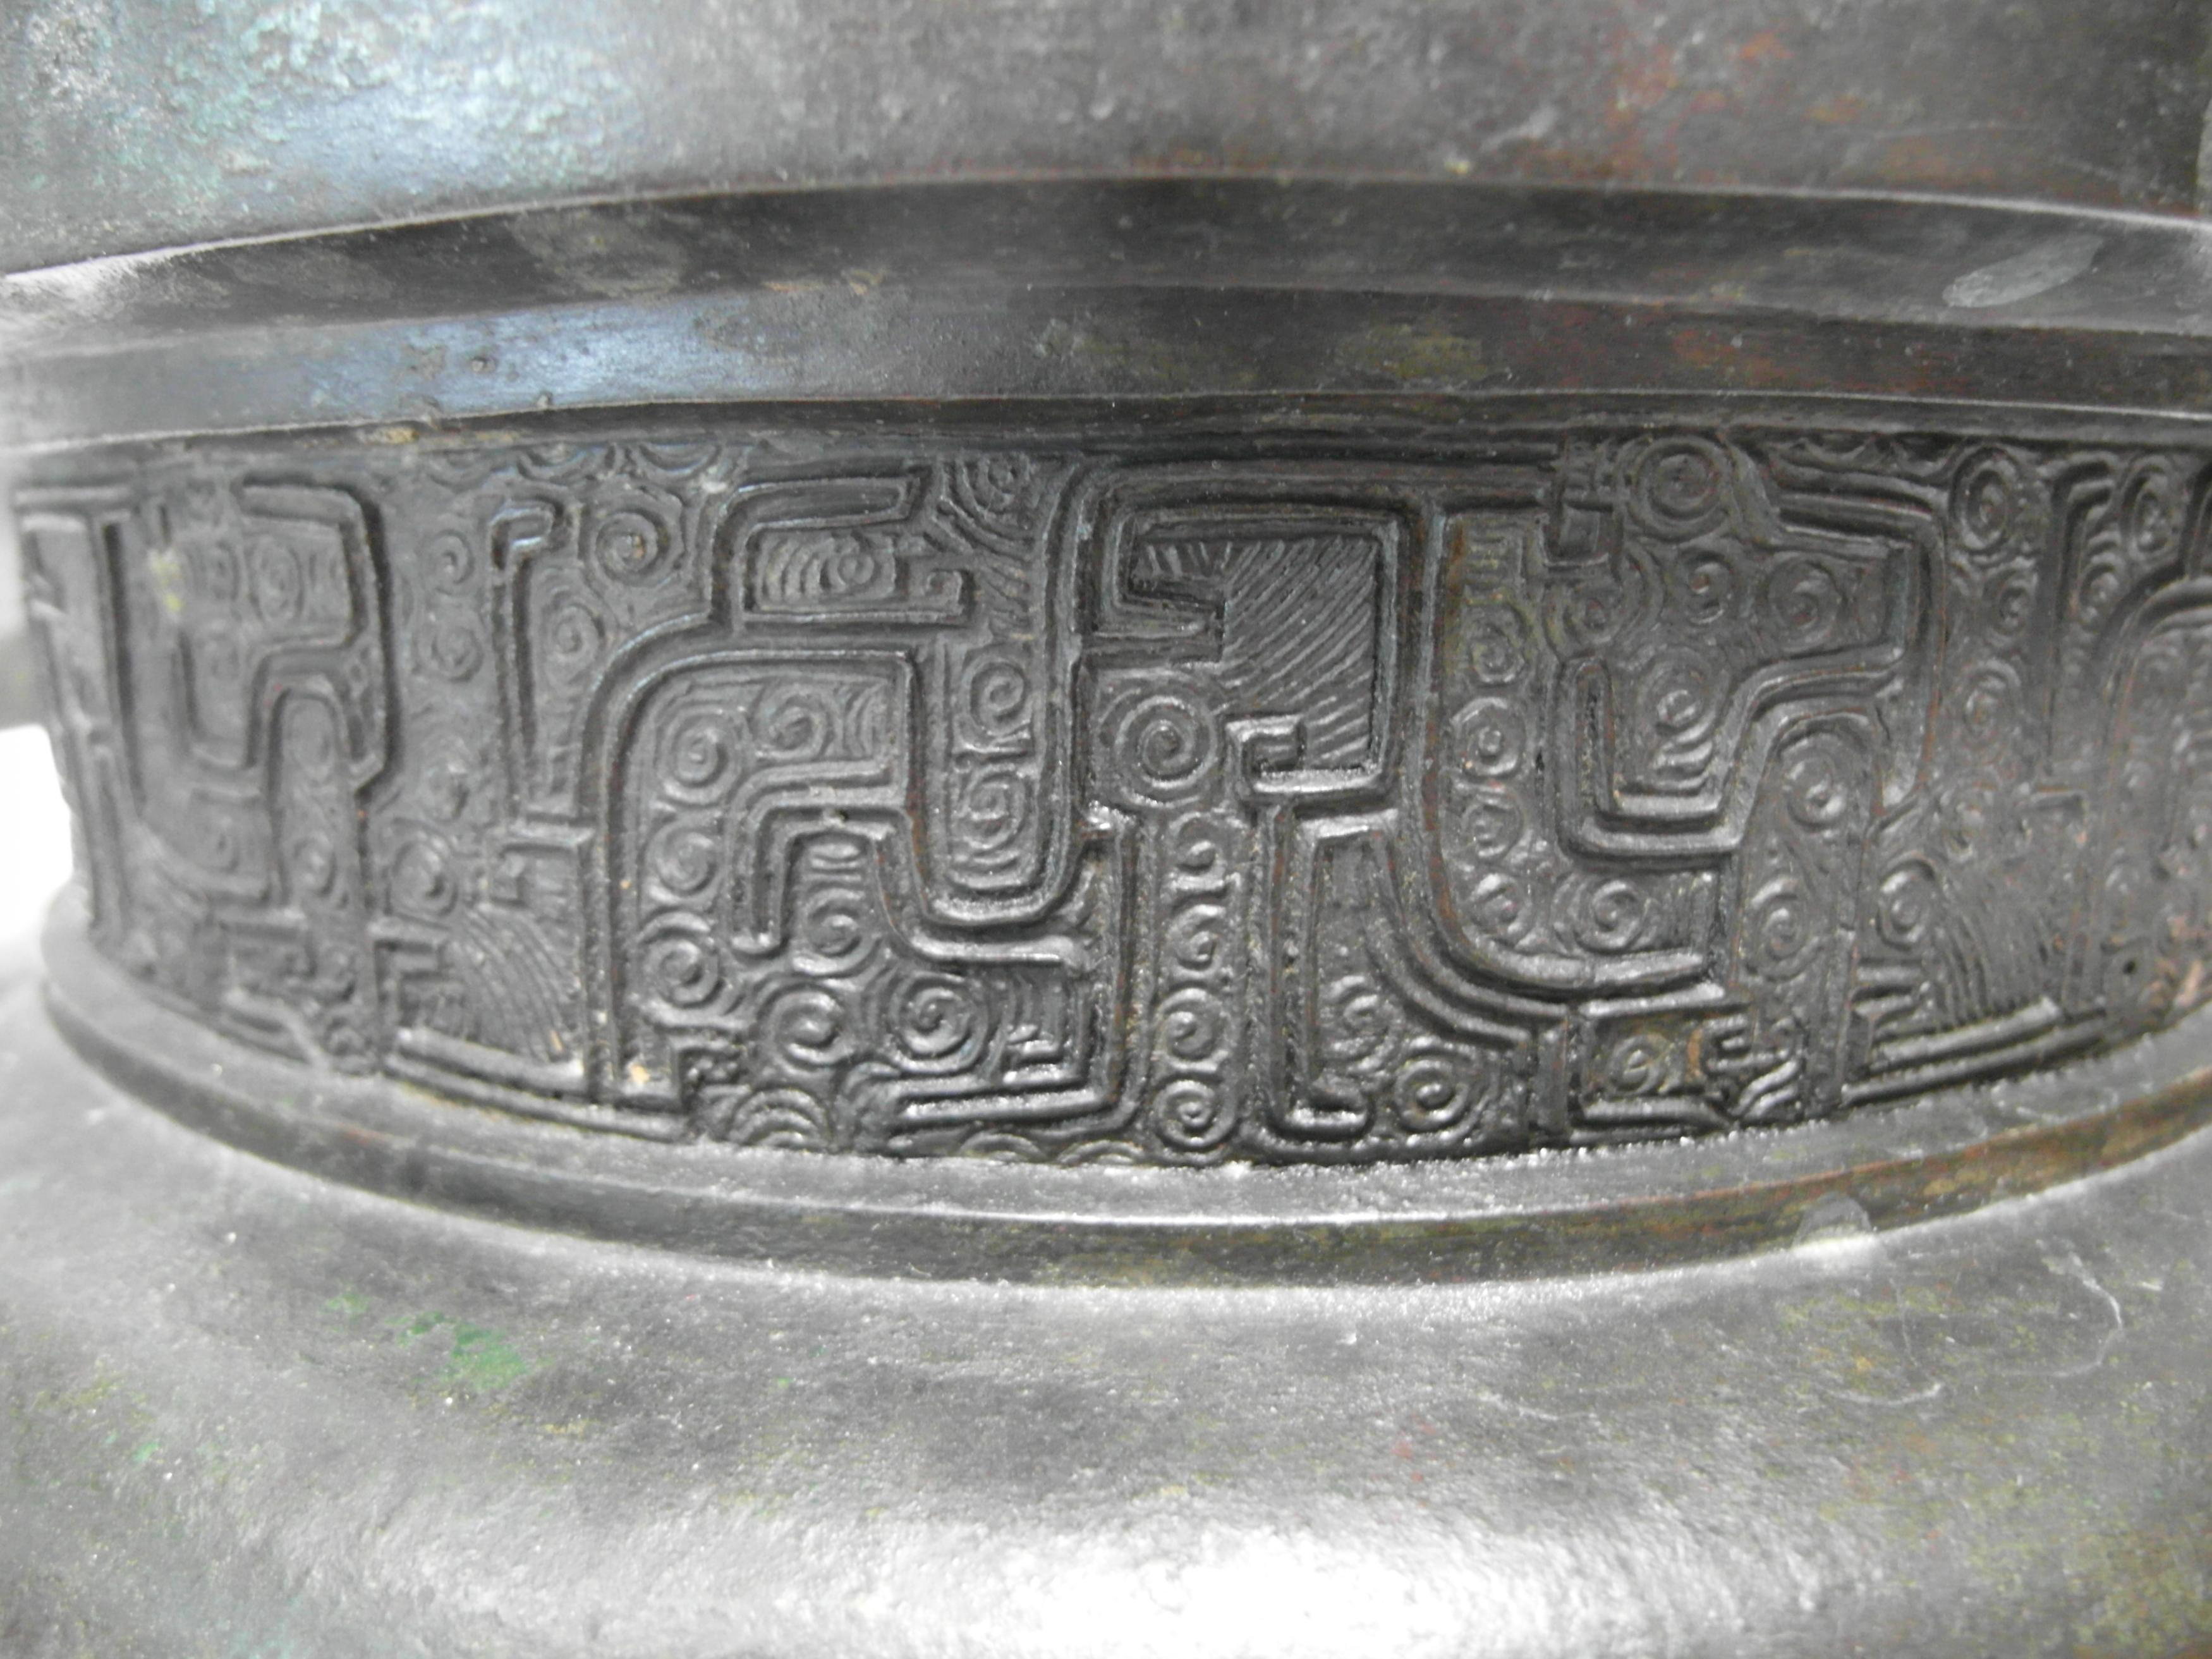 Lot 9 - RARE, LARGE AND EARLY CENSER. Origin: China. Dynasty: Song or Yuan dynasty. Technique: Bronze with